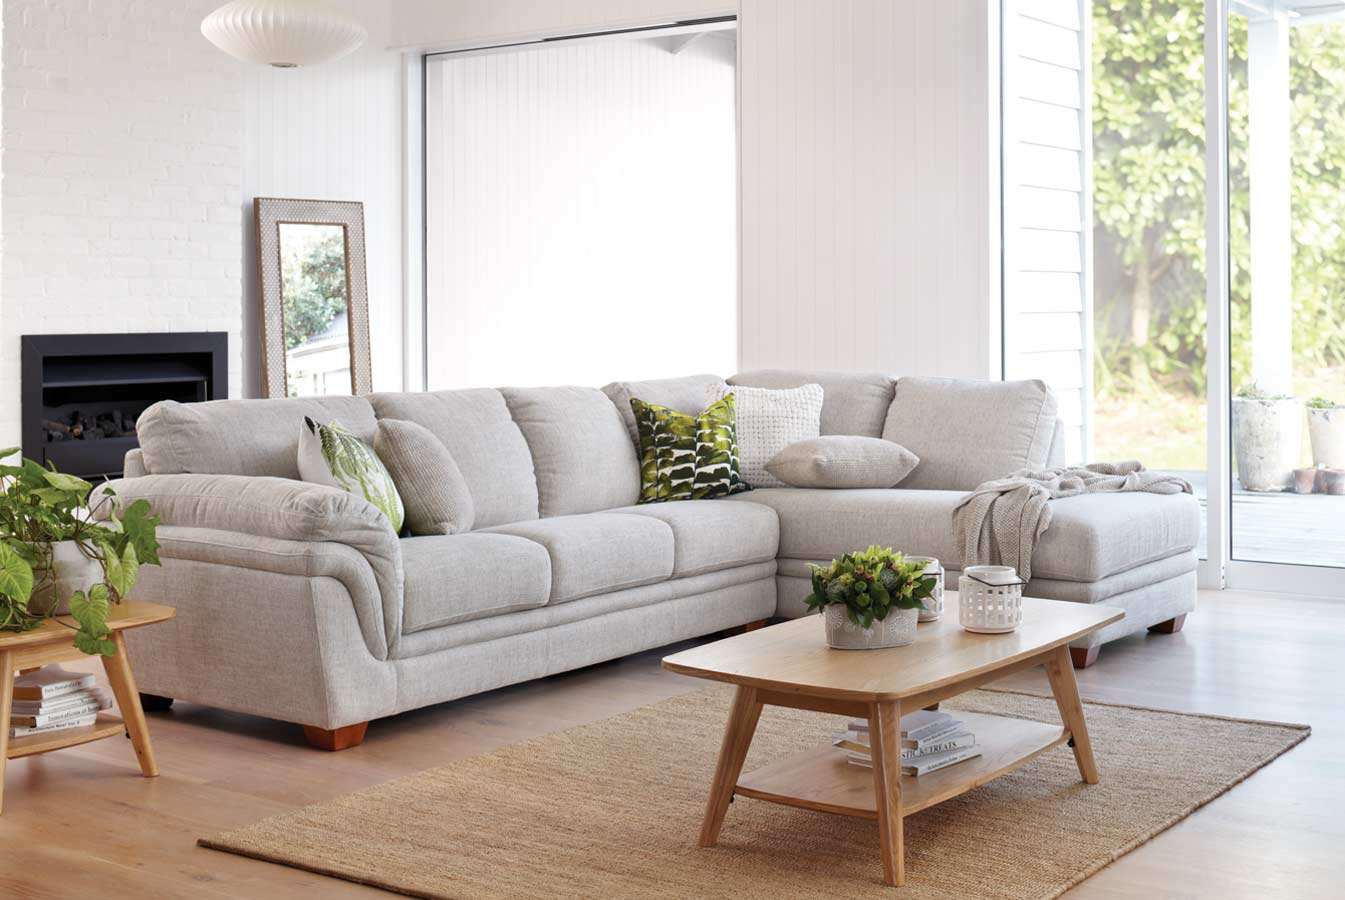 Sofa Lounge Nz Furniture Outdoor Furniture Office Furniture Bedroom